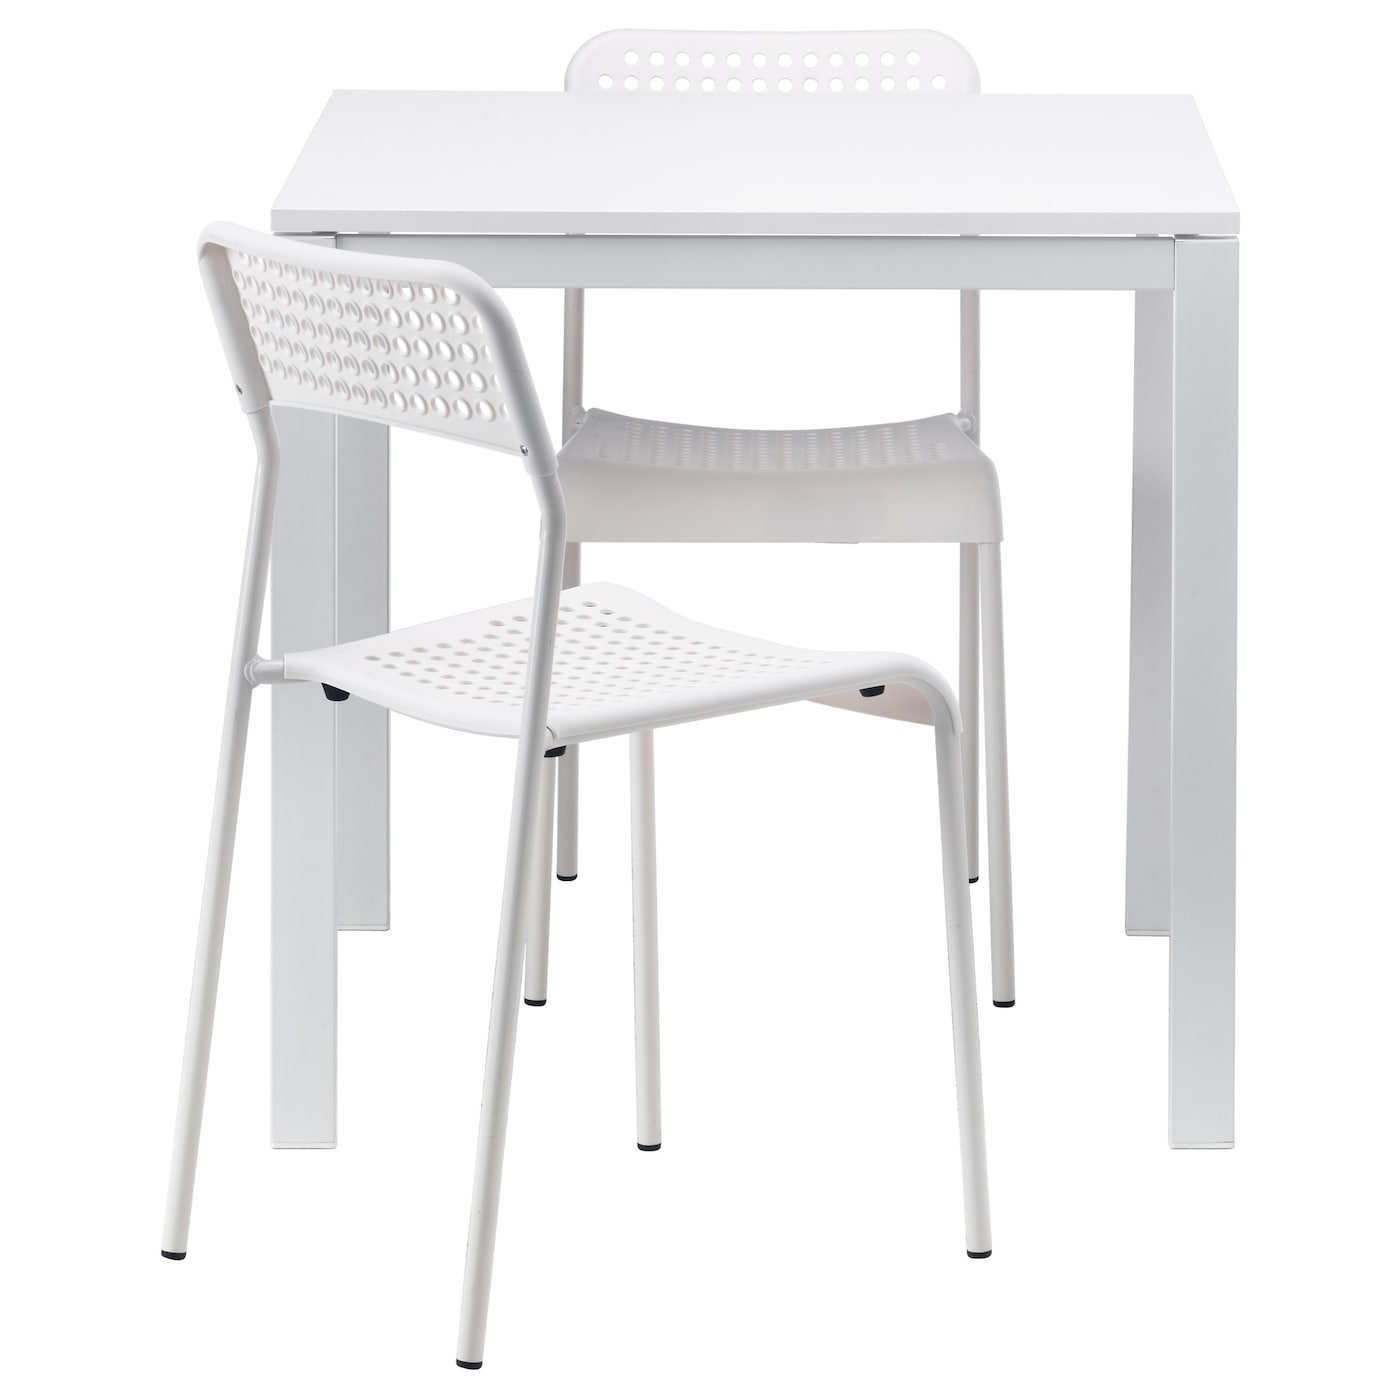 IKEA MELLTORP/ADDE table and 2 chairs Seats 4.